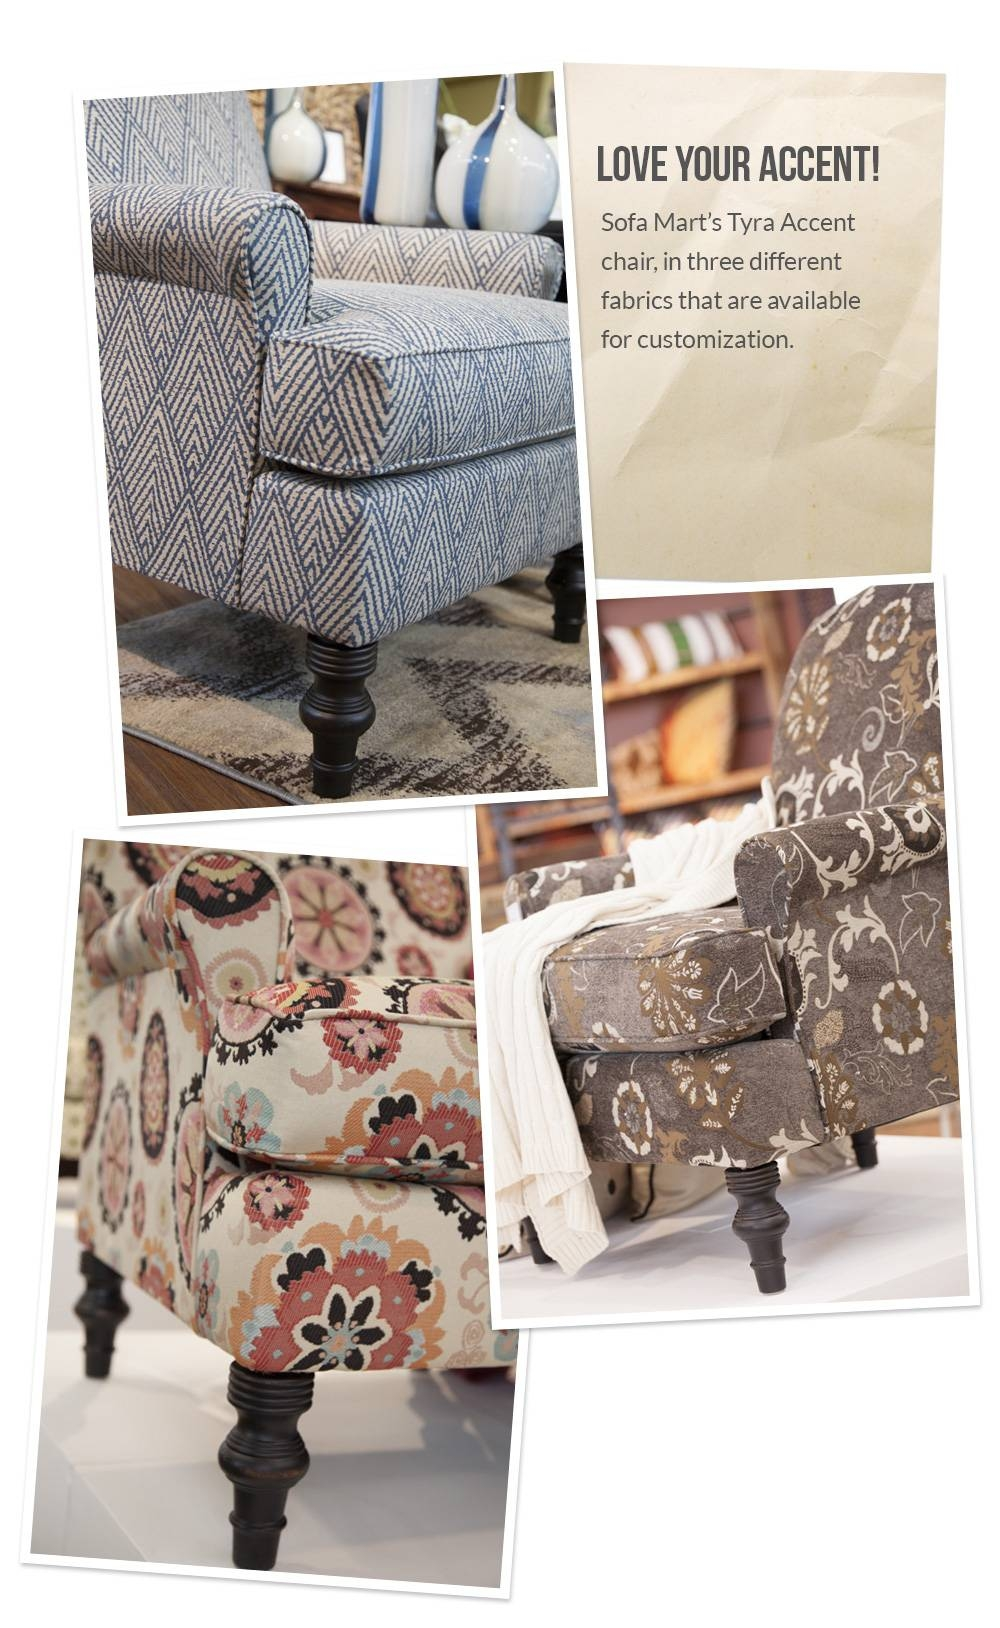 Love Your Accent! Custom Accent Chair Fabrics – Front Door With Sofa Mart Chairs (View 17 of 30)